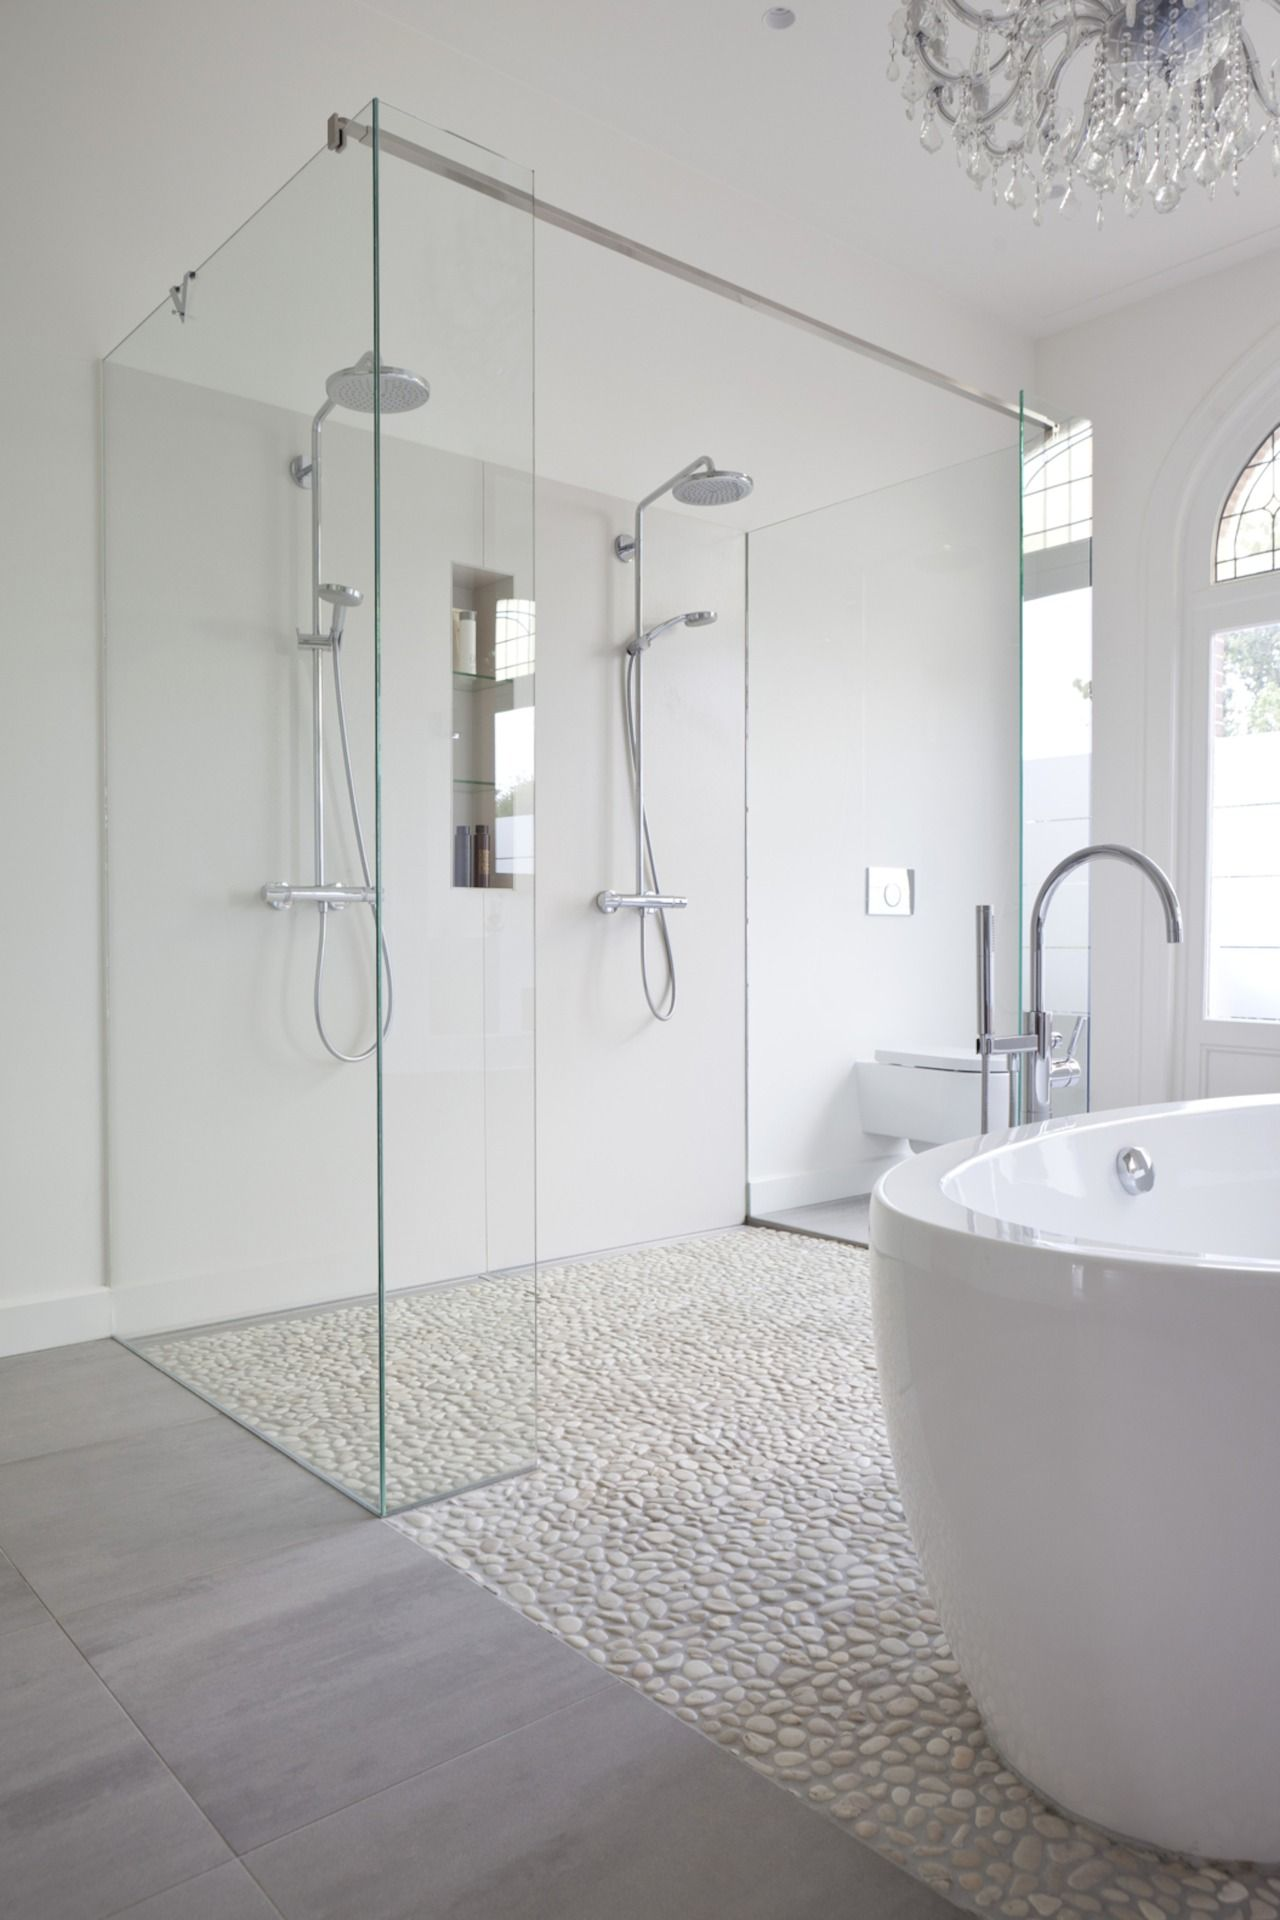 Townhouse at the park by remy meijers lvsh thnomy pinterest townhouse at the park by remy meijers lvsh pebble tilespebble tile shower floortextured tiles bathroomclean dailygadgetfo Images